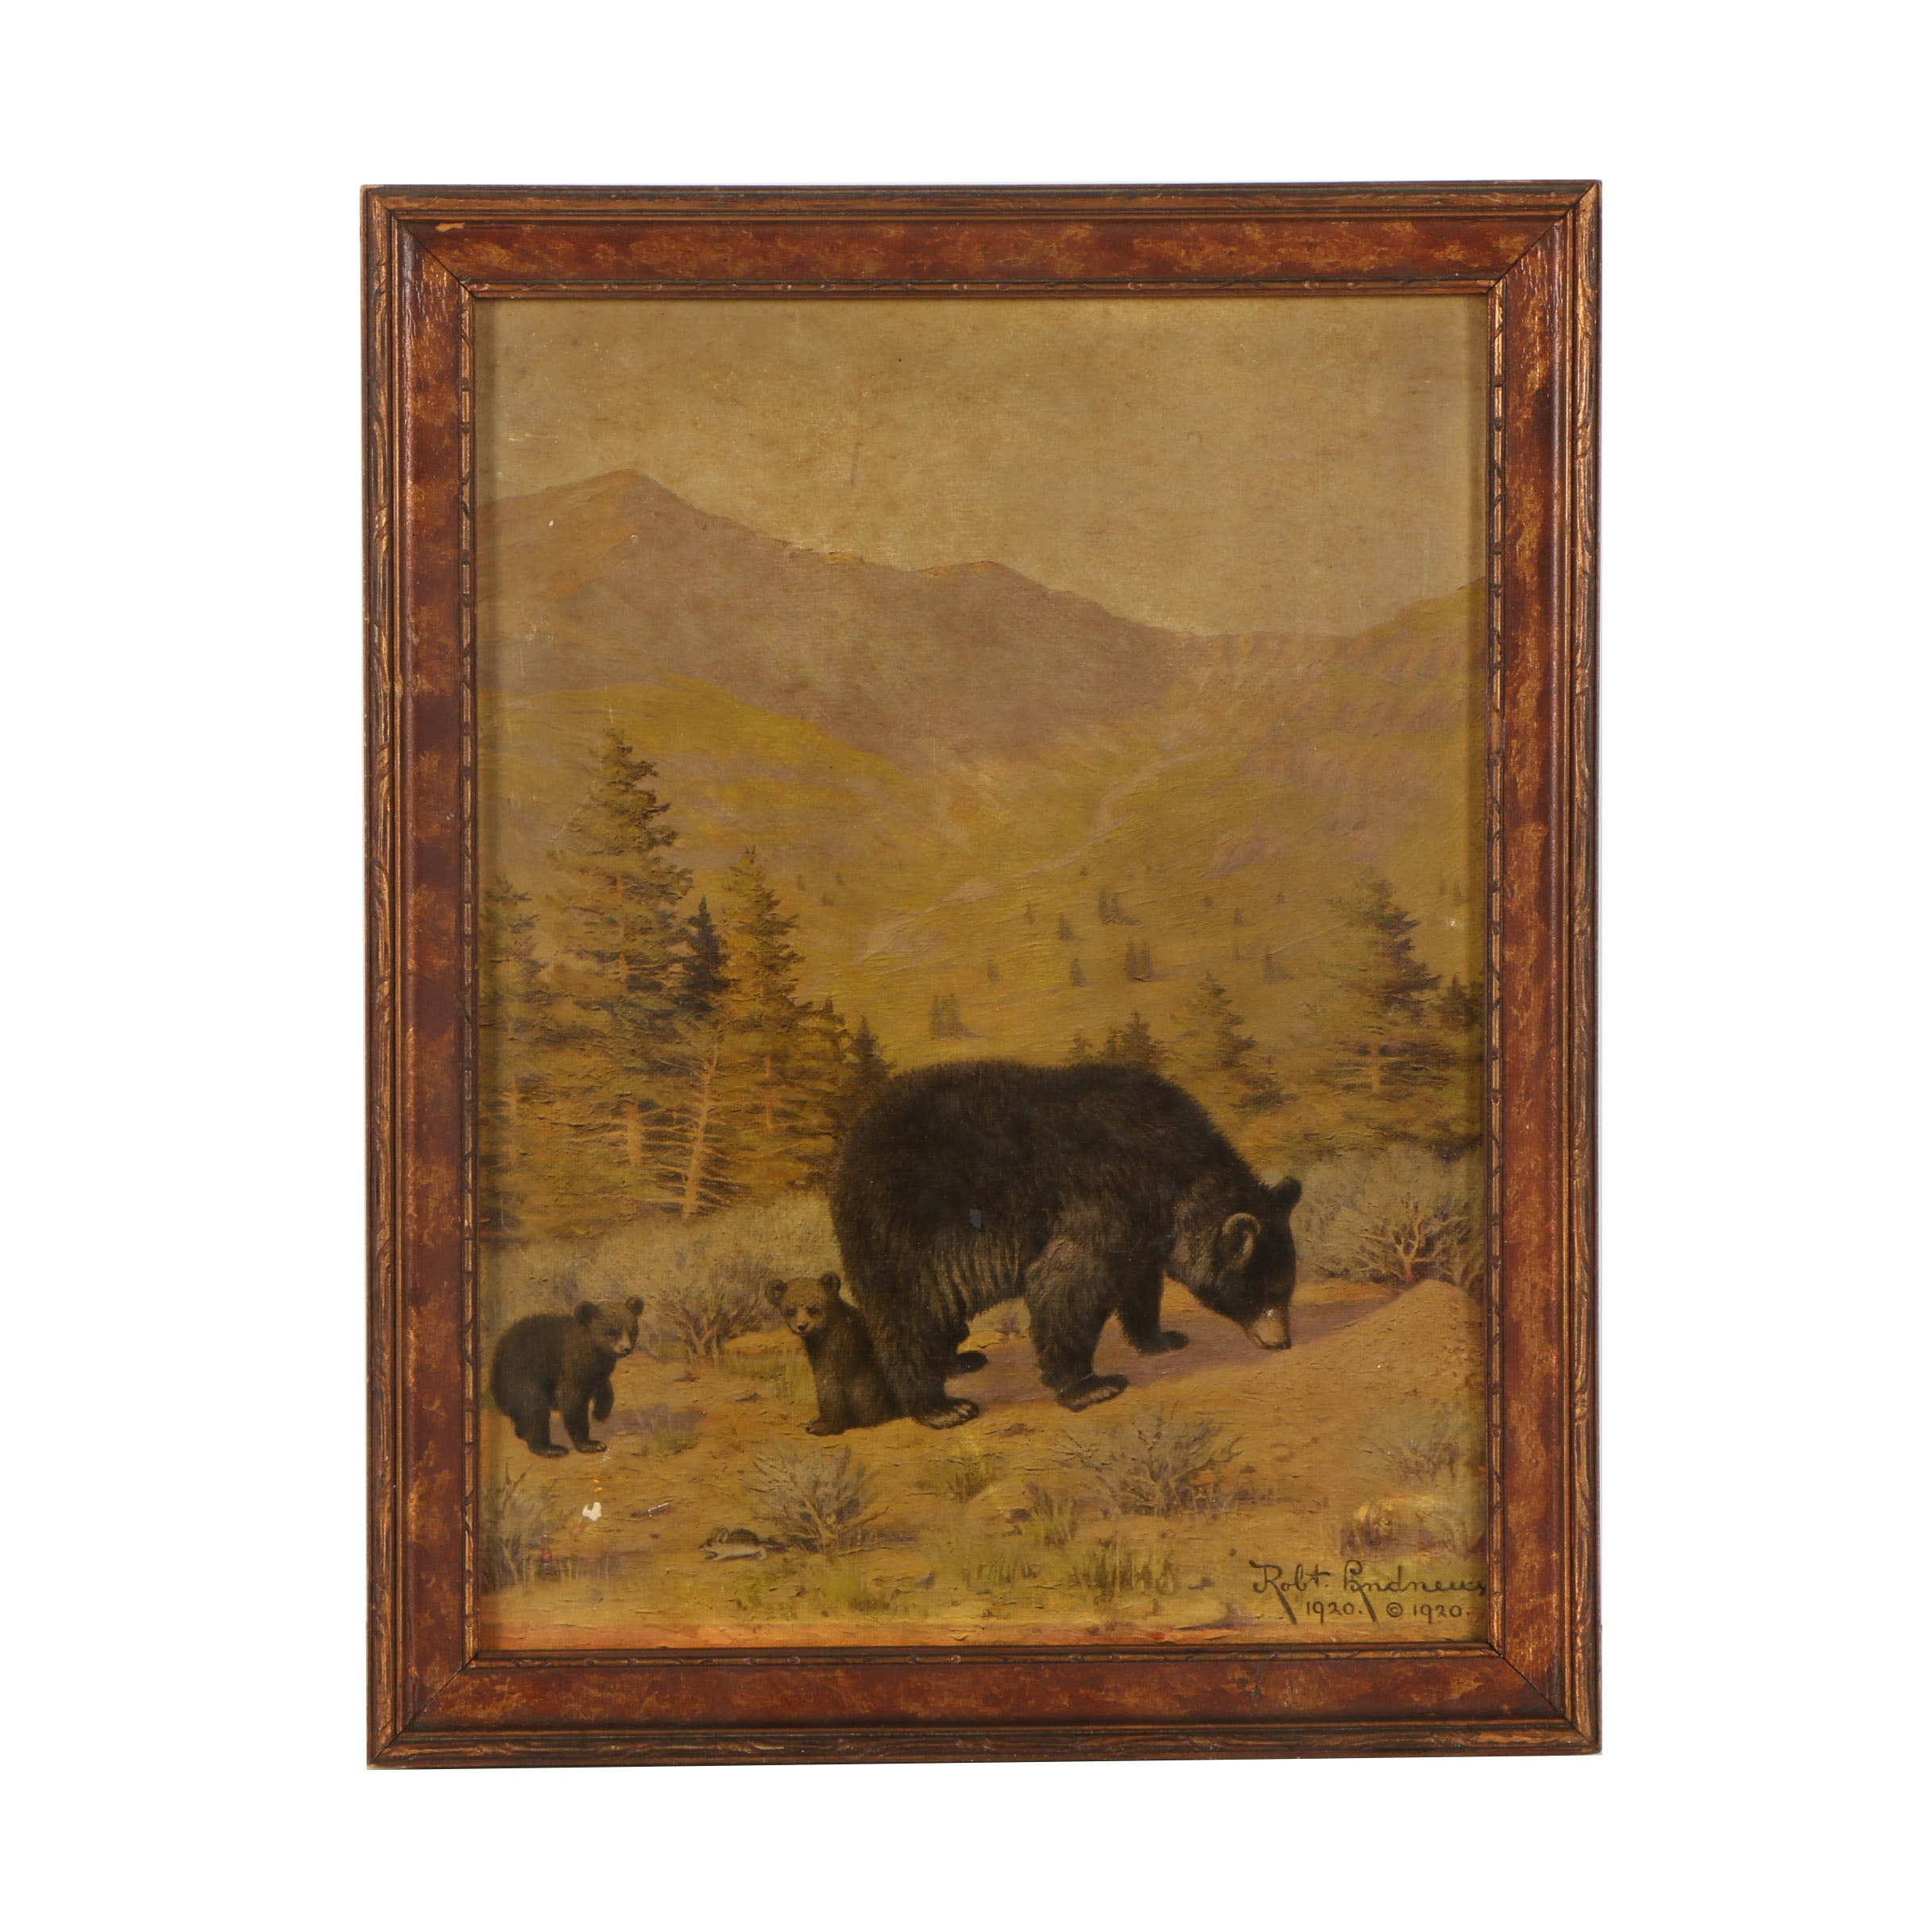 Vintage Offset Lithograph of Bears